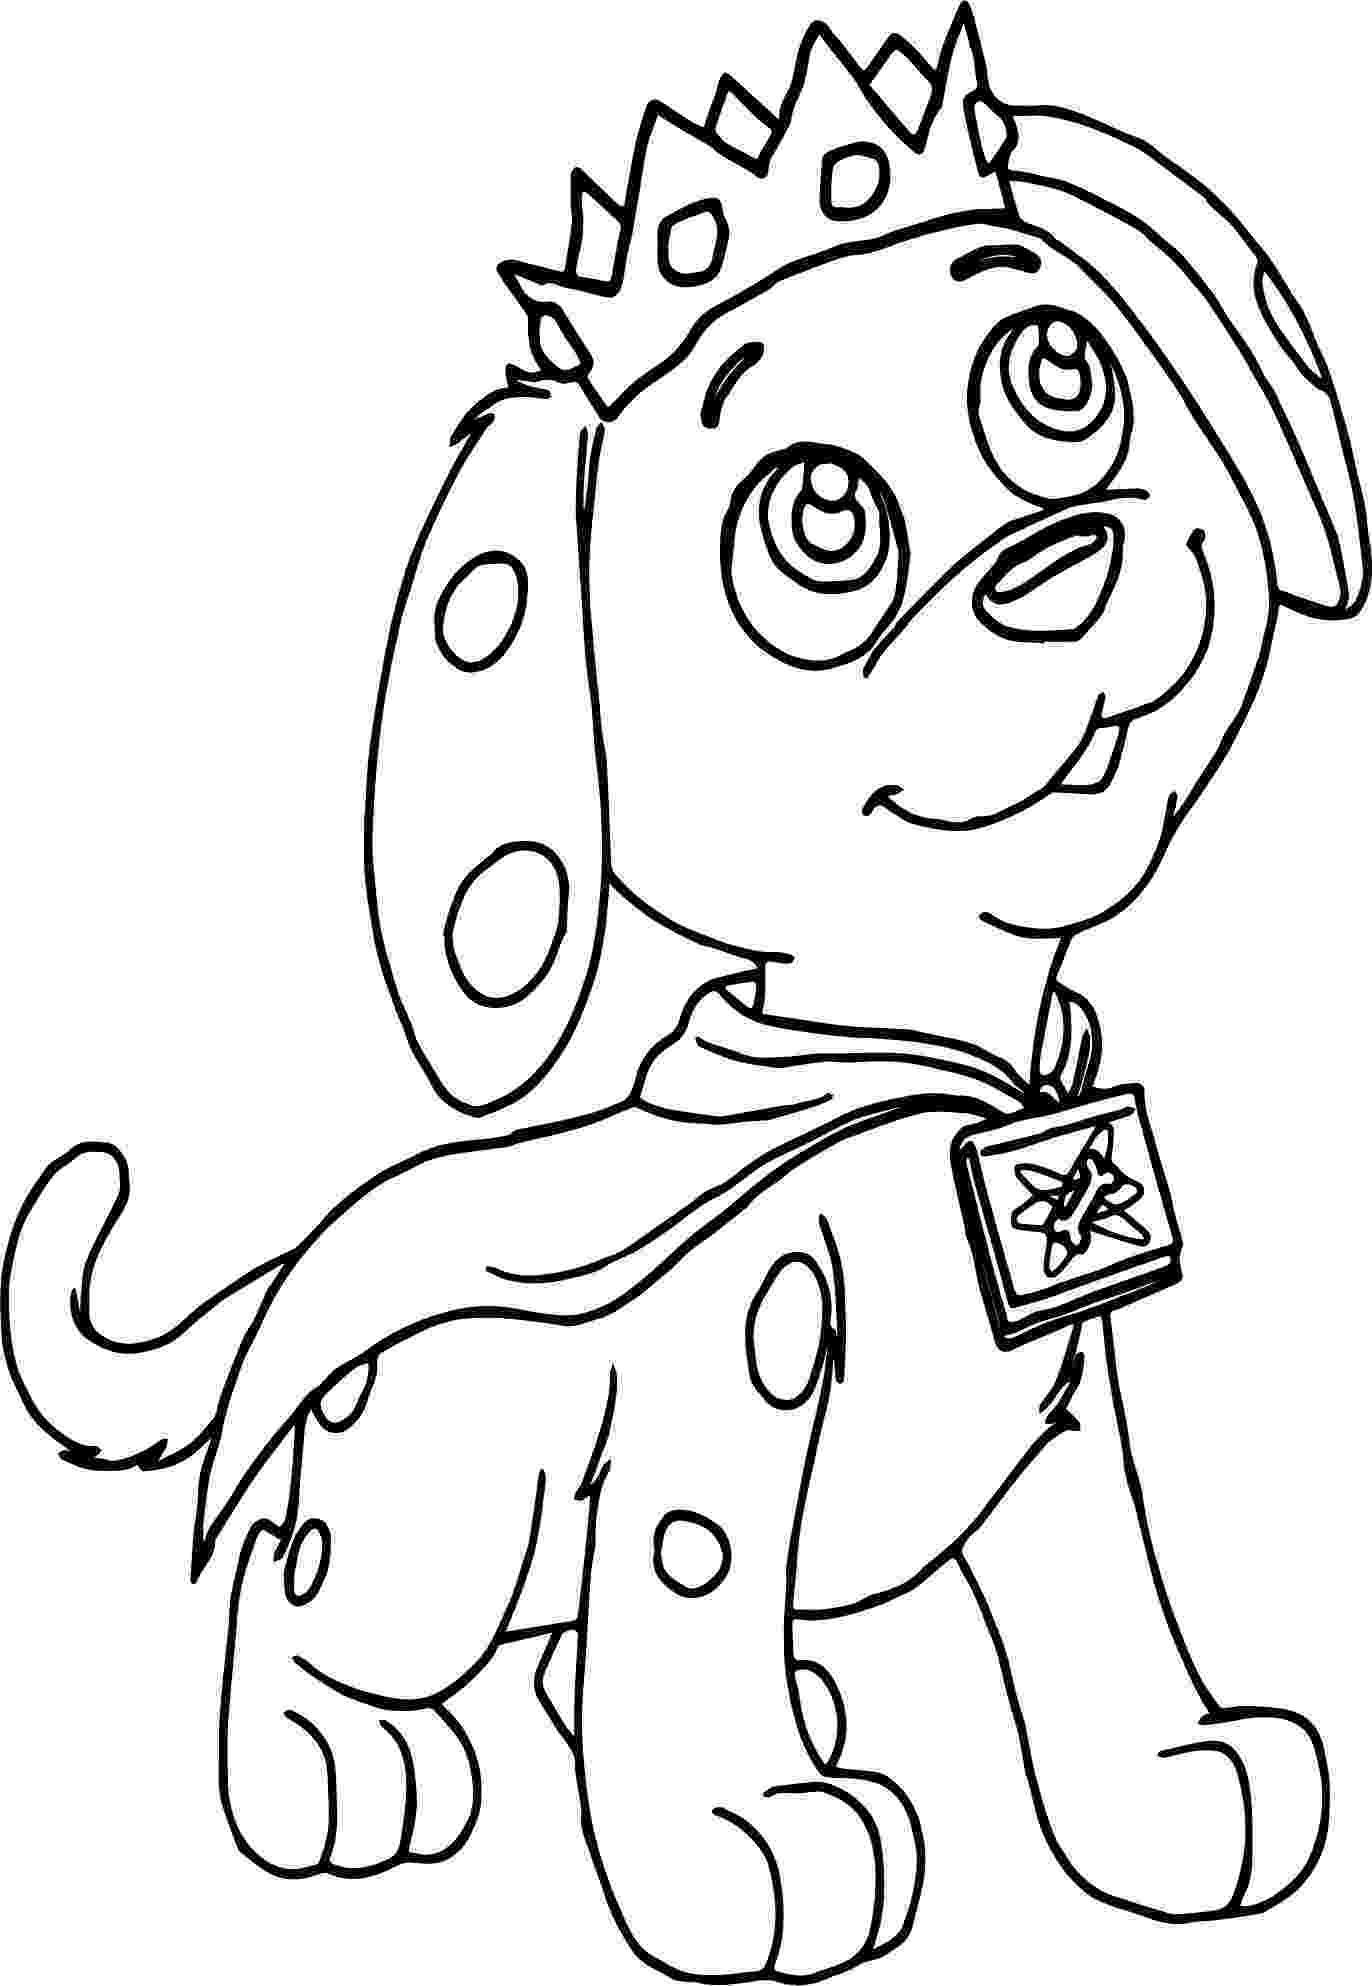 super colouring pages prince puppy super why coloring page wecoloringpagecom colouring super pages